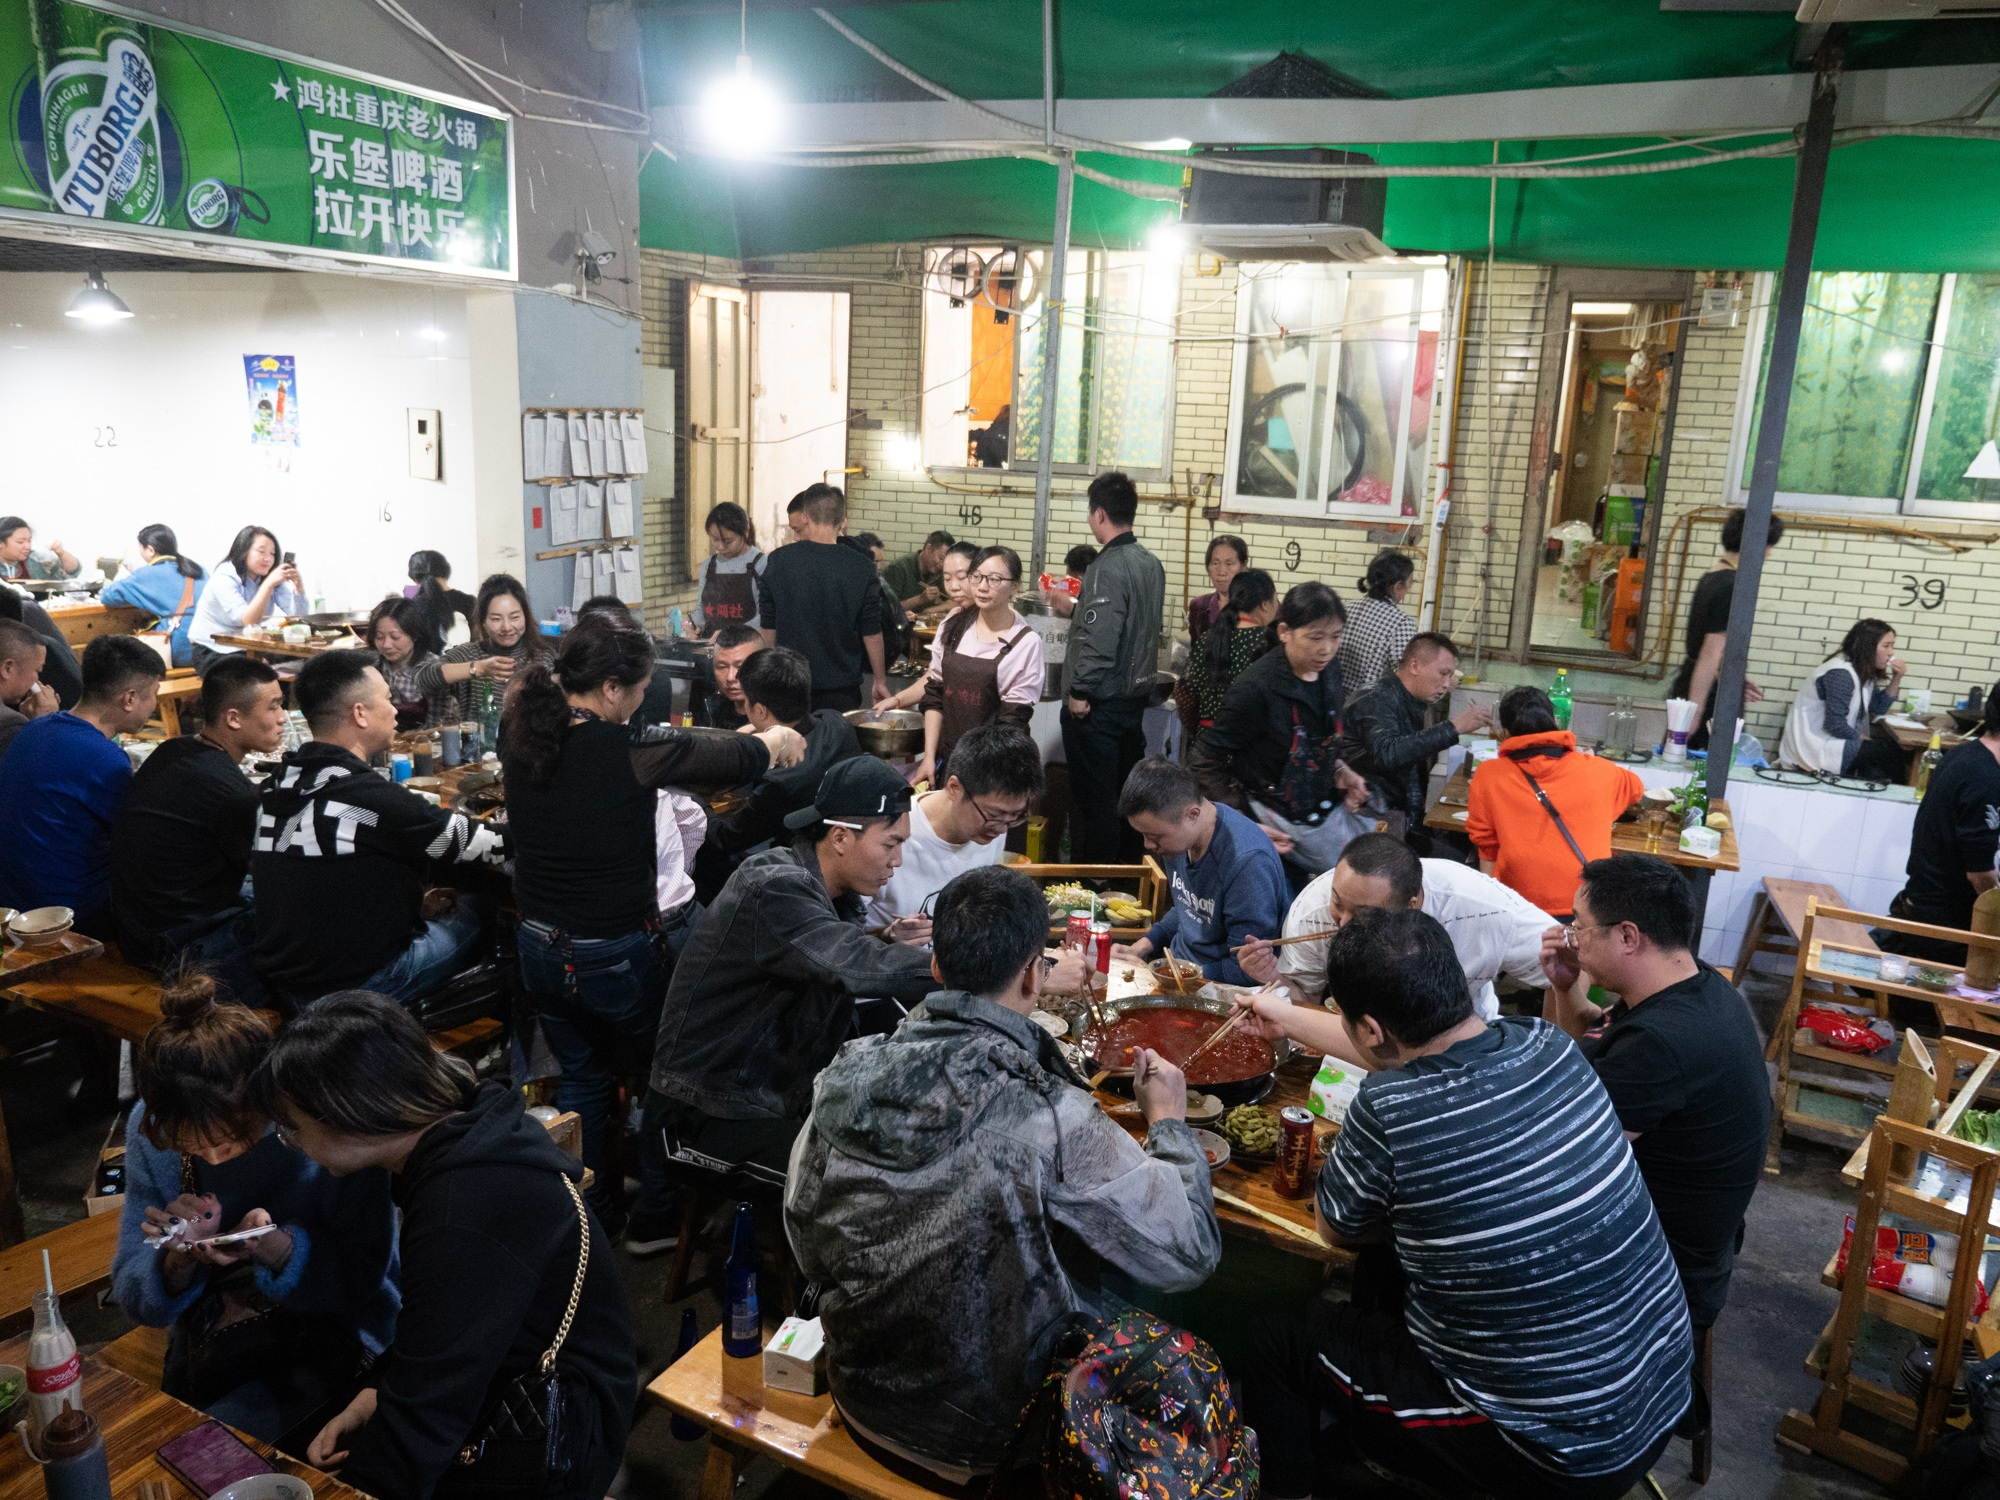 One of the busiest and spiciest hot pot joints in Chengdu